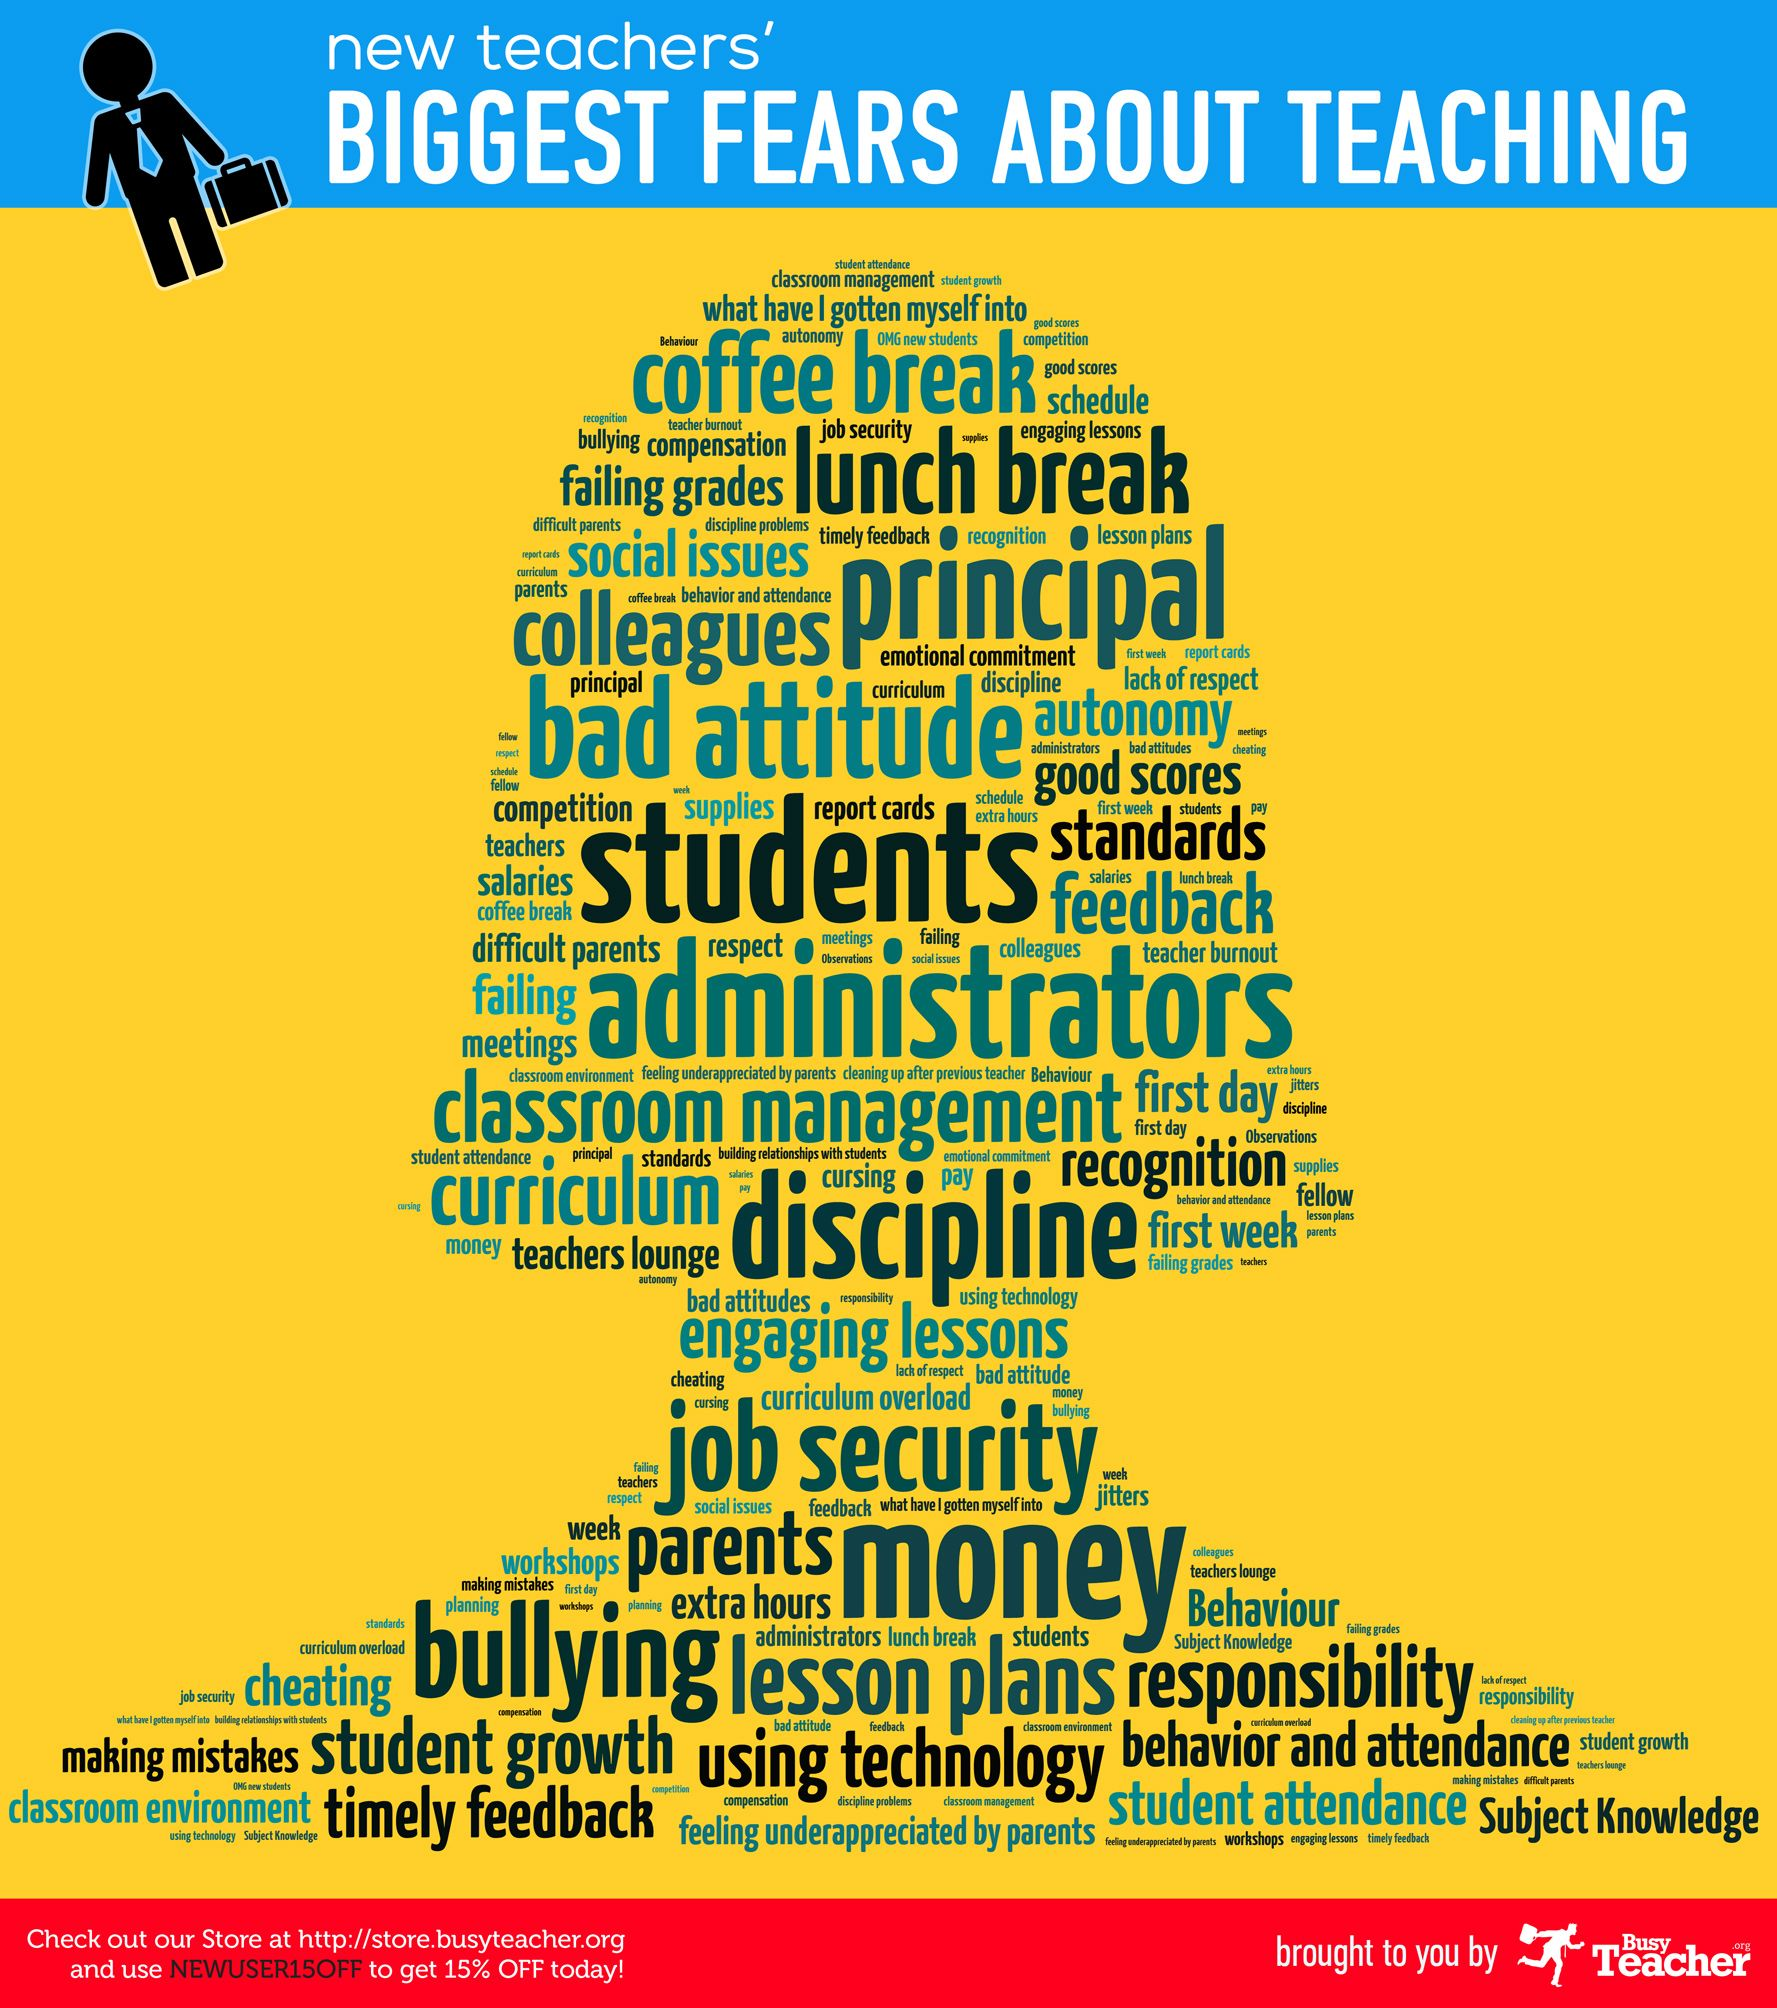 We Ve Asked Several Hundred Of New Teachers About Their